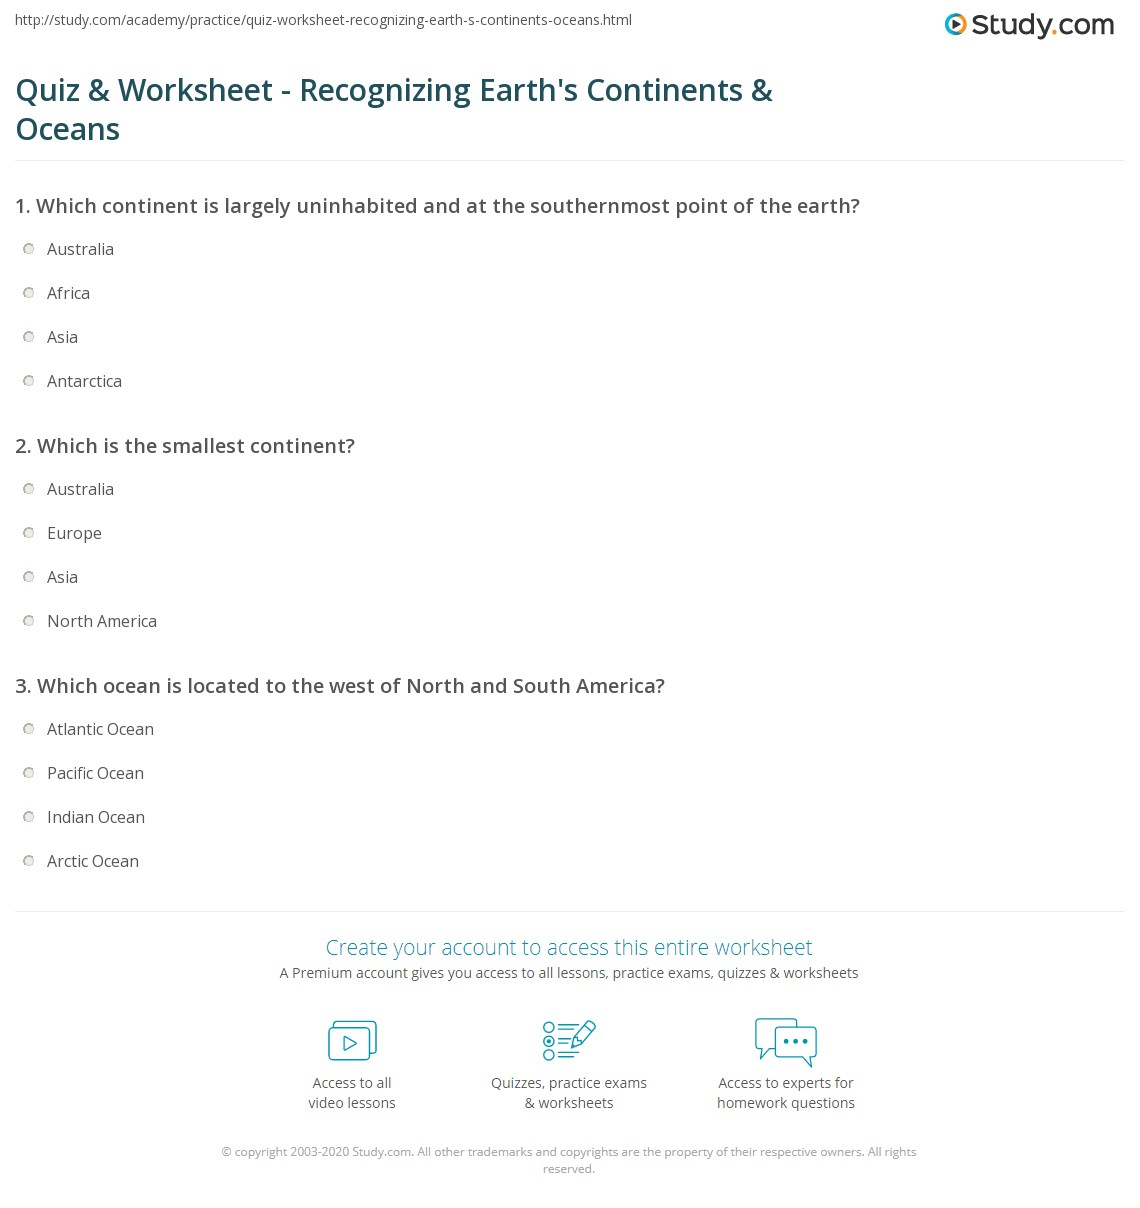 hight resolution of Quiz \u0026 Worksheet - Recognizing Earth's Continents \u0026 Oceans   Study.com